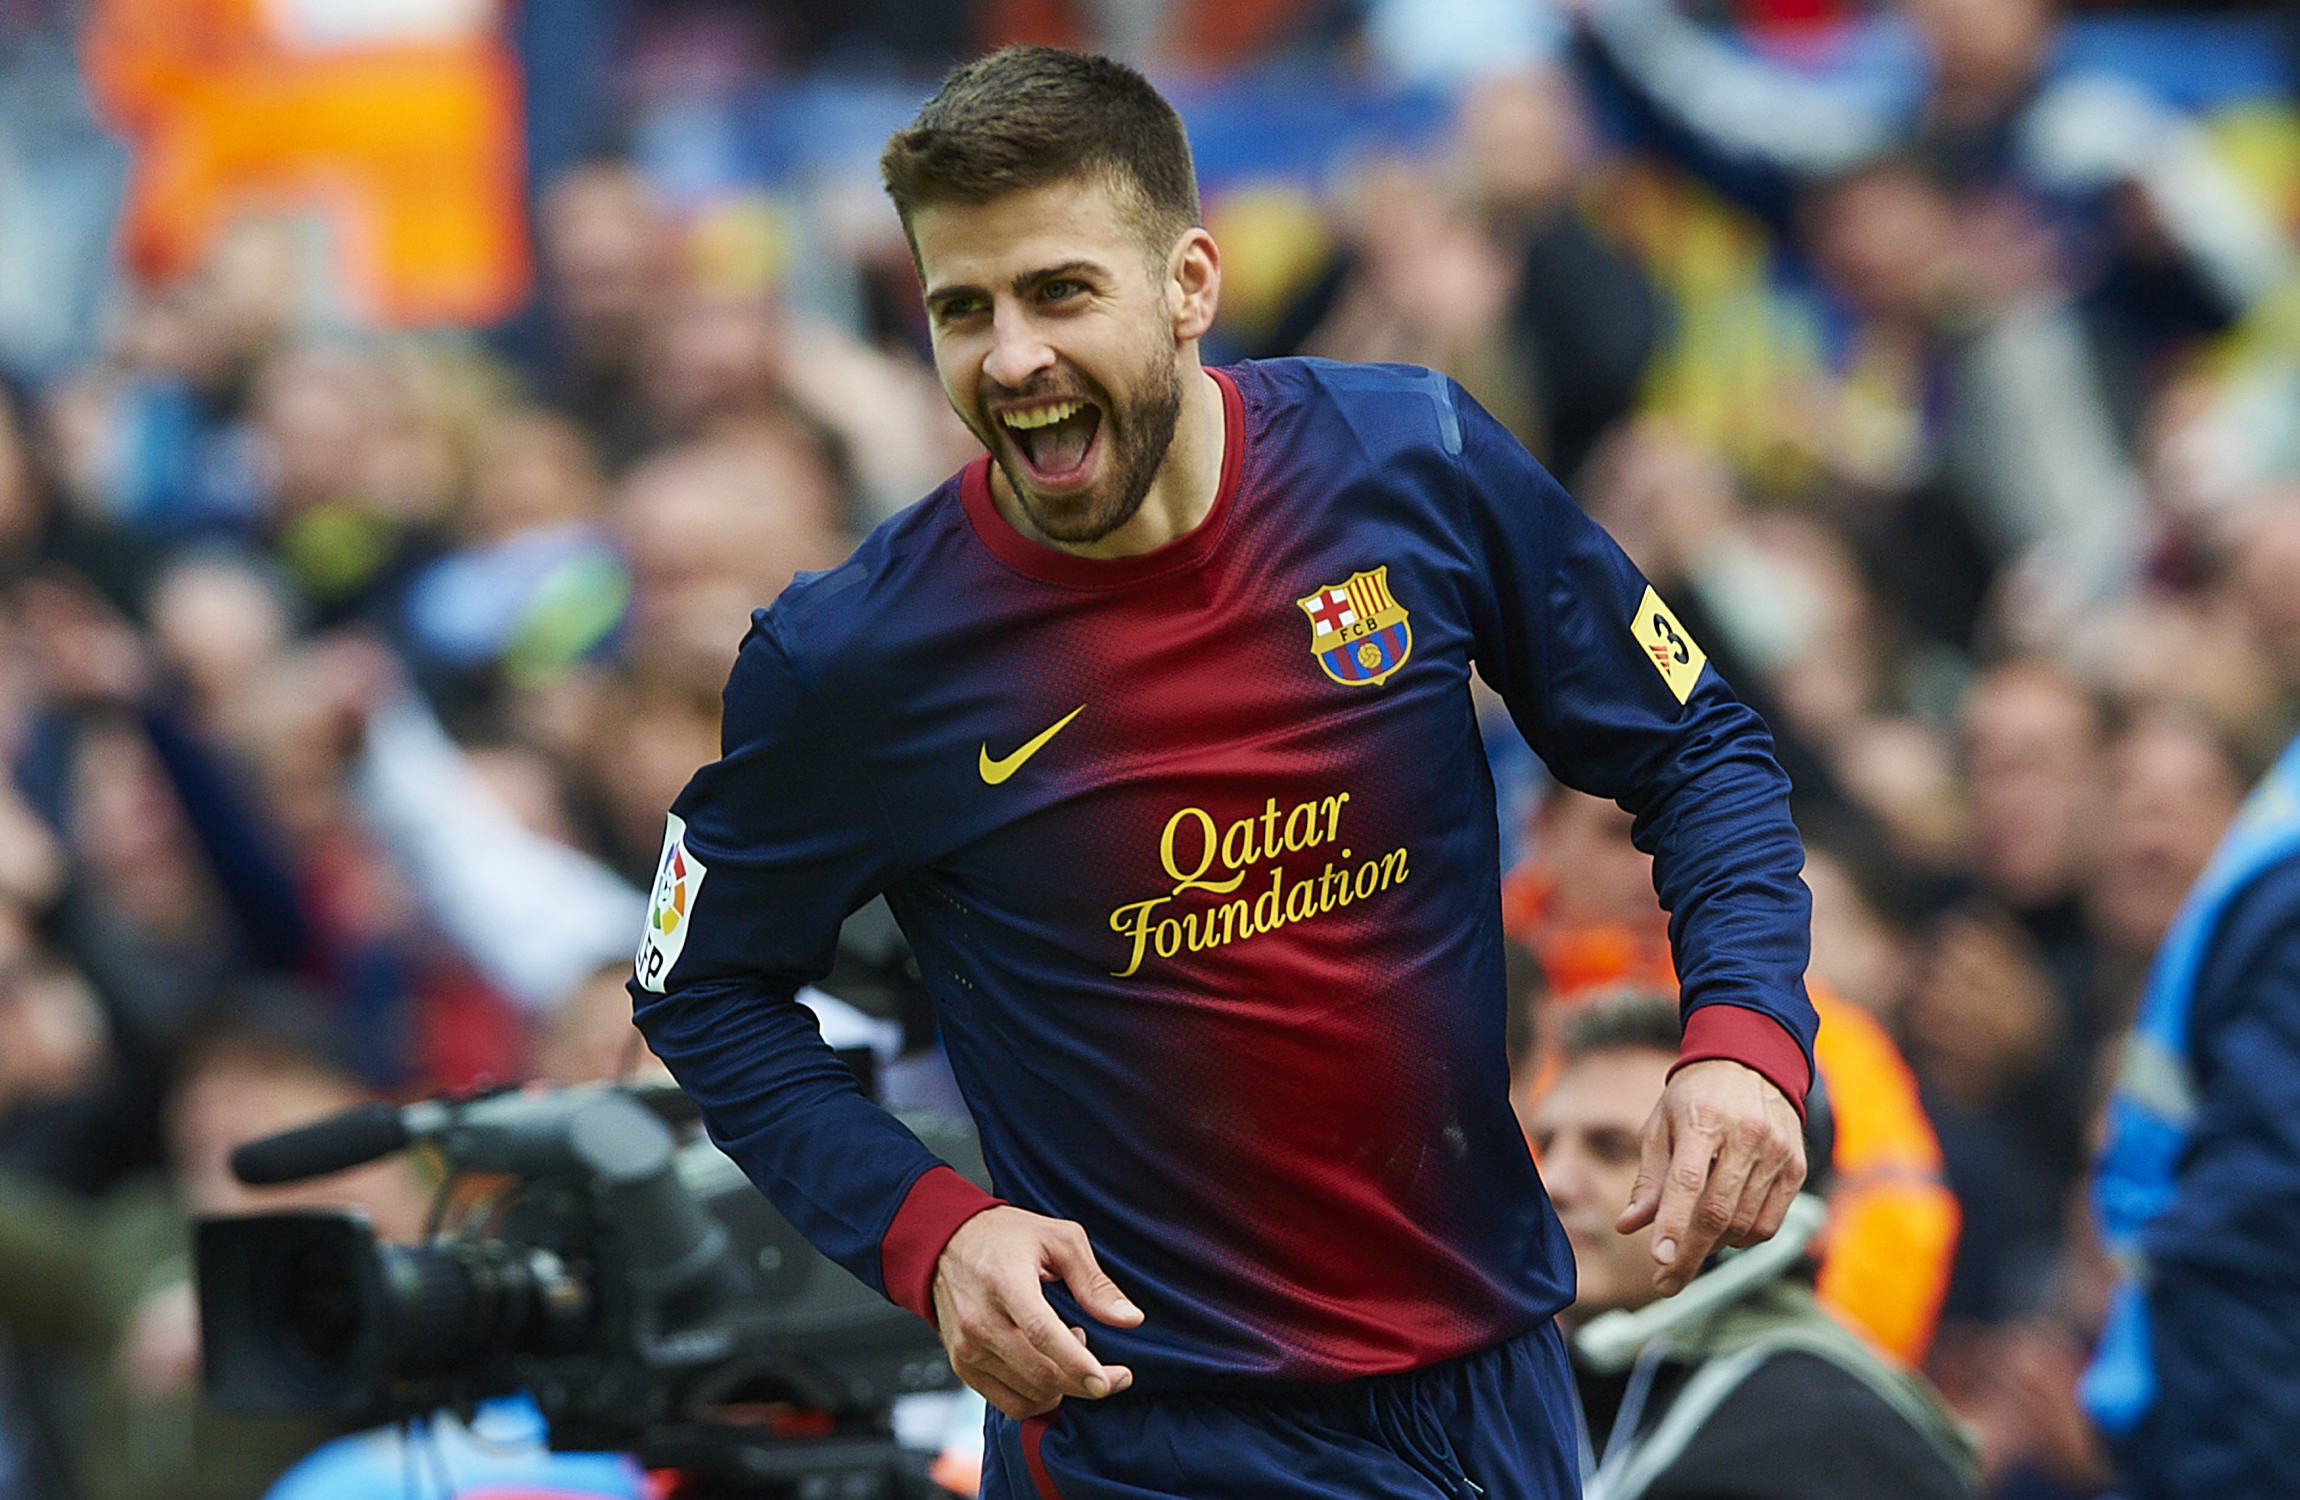 LaLiga: Gerard Pique extends Barcelona contract until 2022